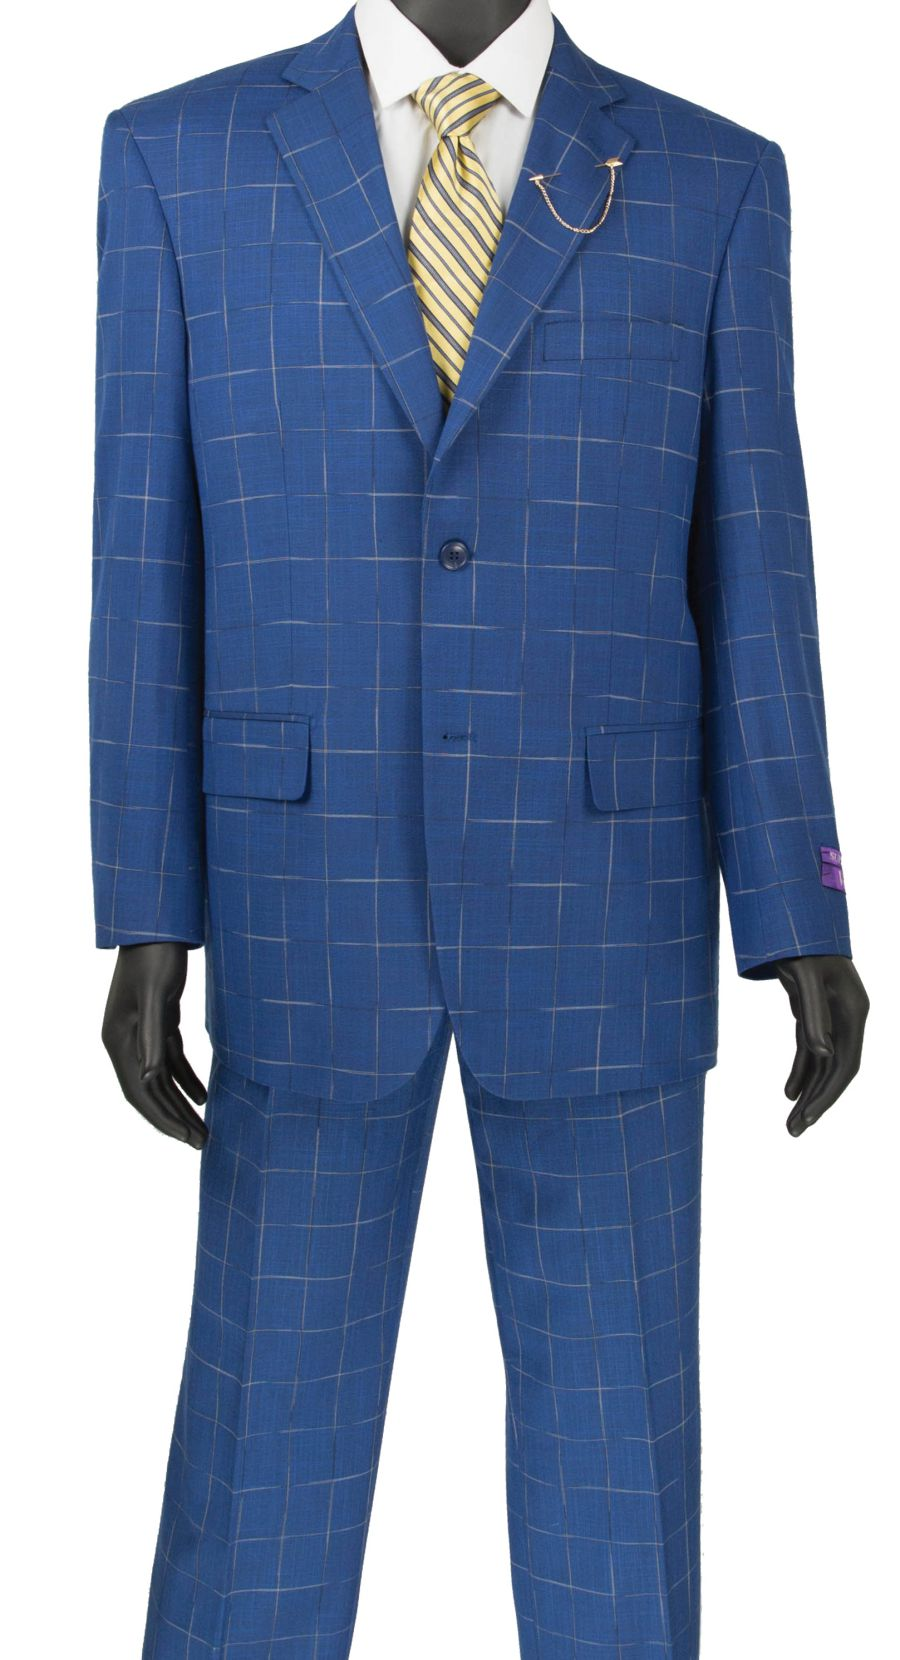 Vinci Men Suit 2RW-4-Blue - Church Suits For Less